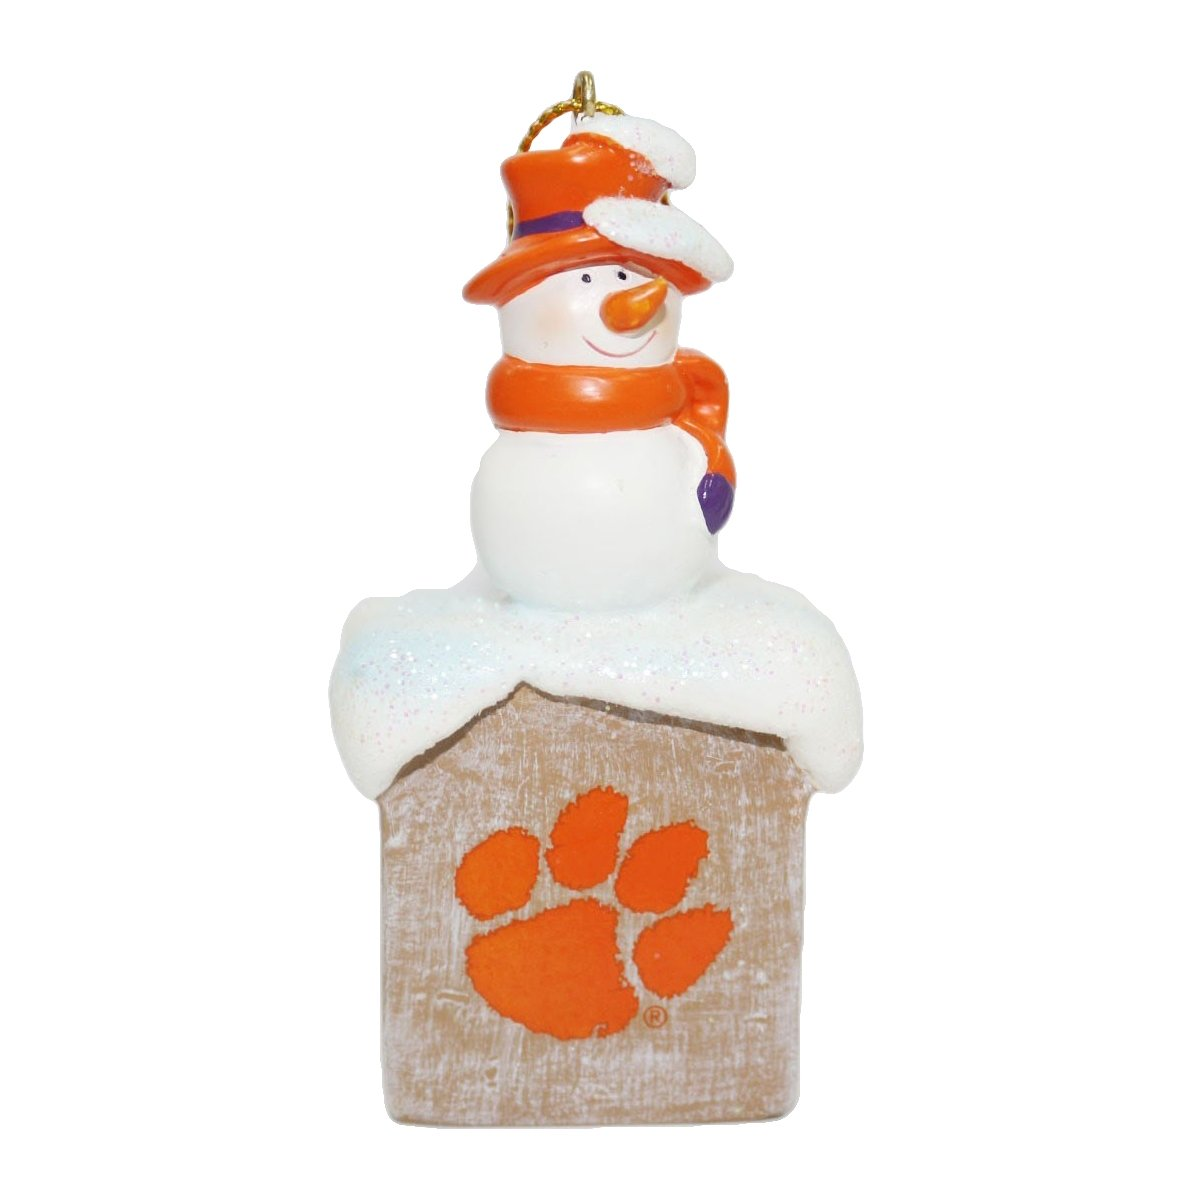 "3"" Resin Snowman Ornament With Orange Paw - Mr. Knickerbocker"